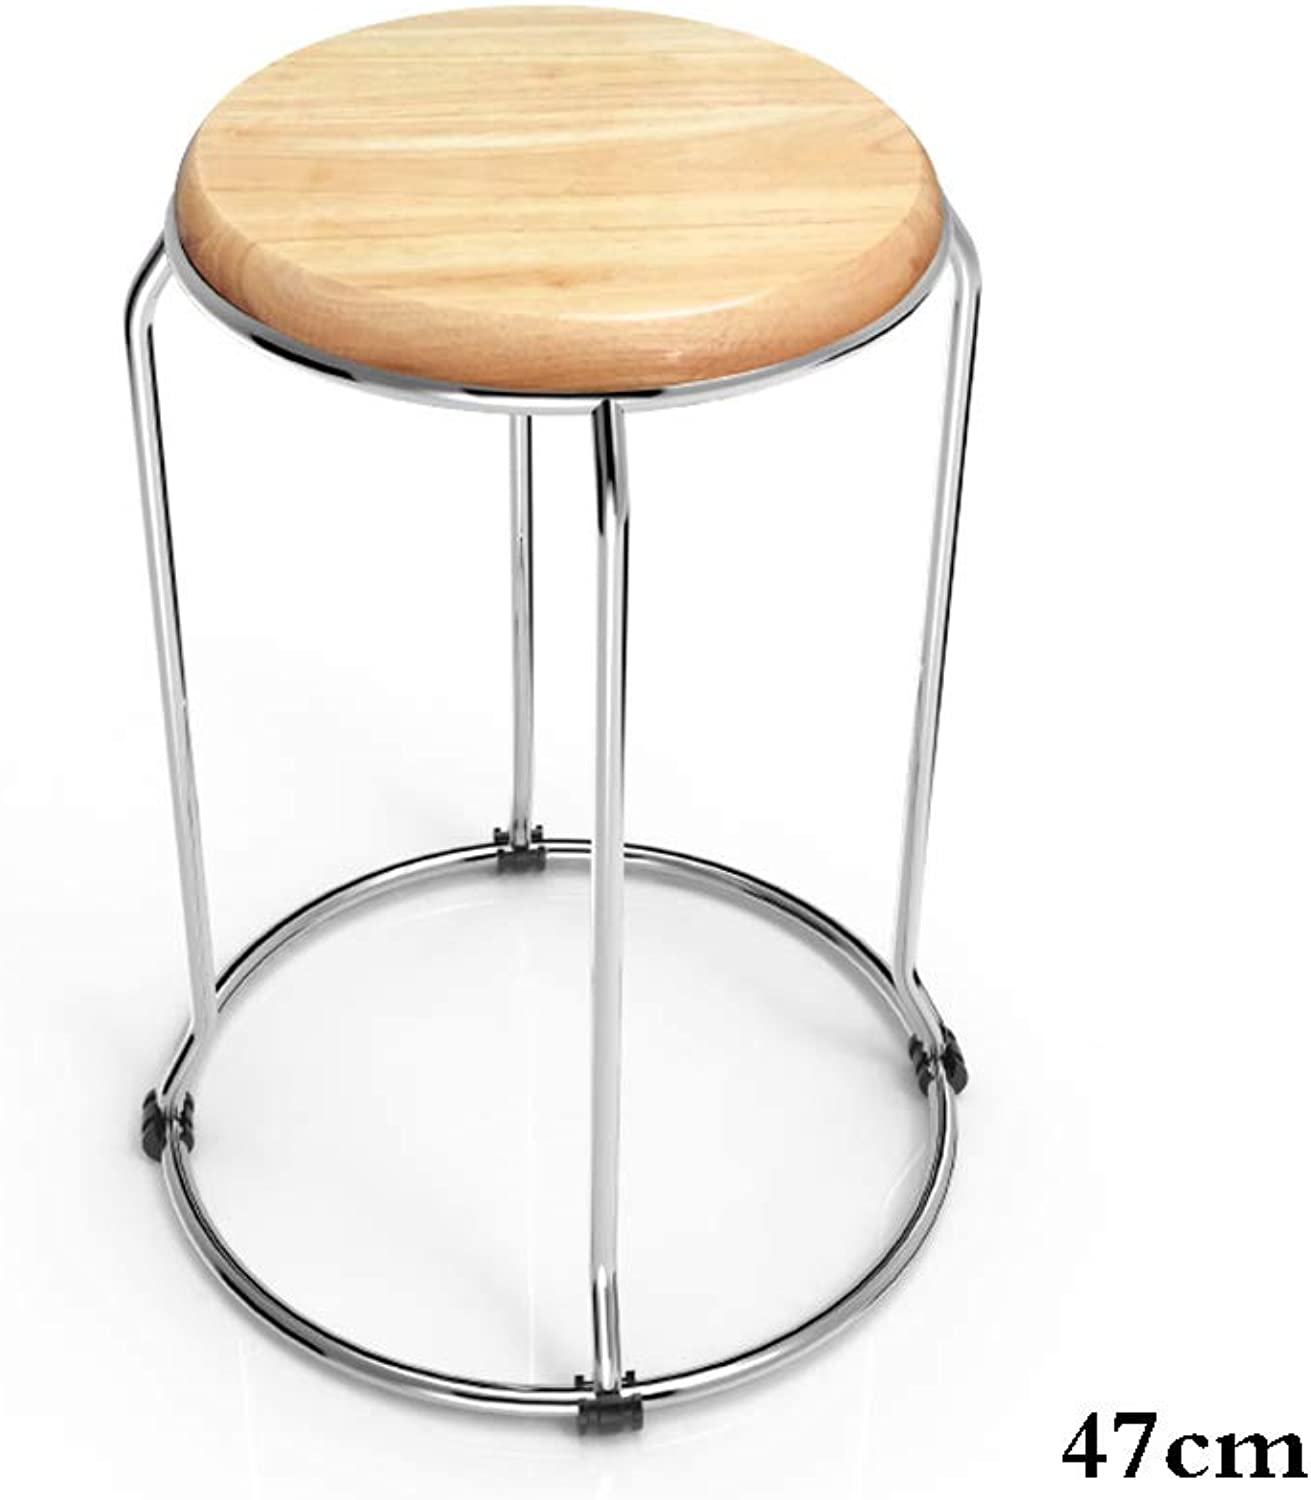 Solid Wood Stool Small Stool Folding Chairs Home Dining Chair Oak Bench (Size   47)